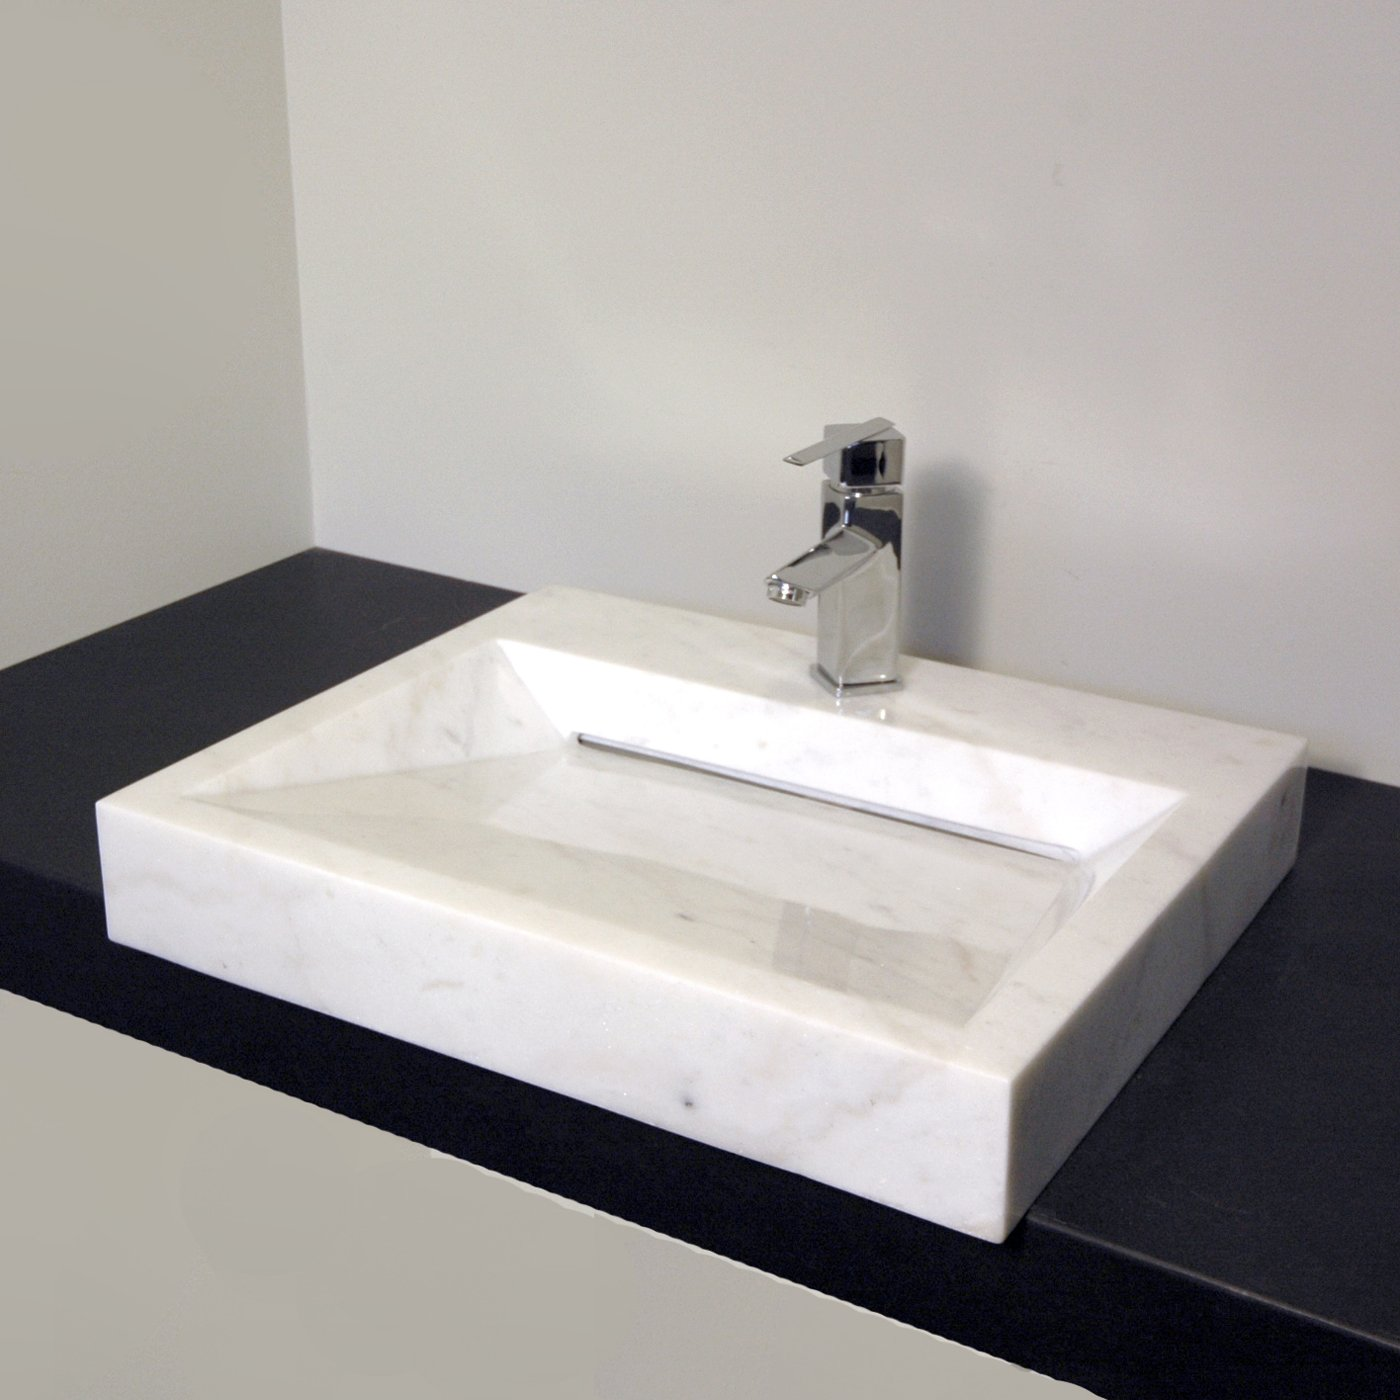 Designer Toilets And Sinks Square Bathroom Sink Contemporary Looking Elegance